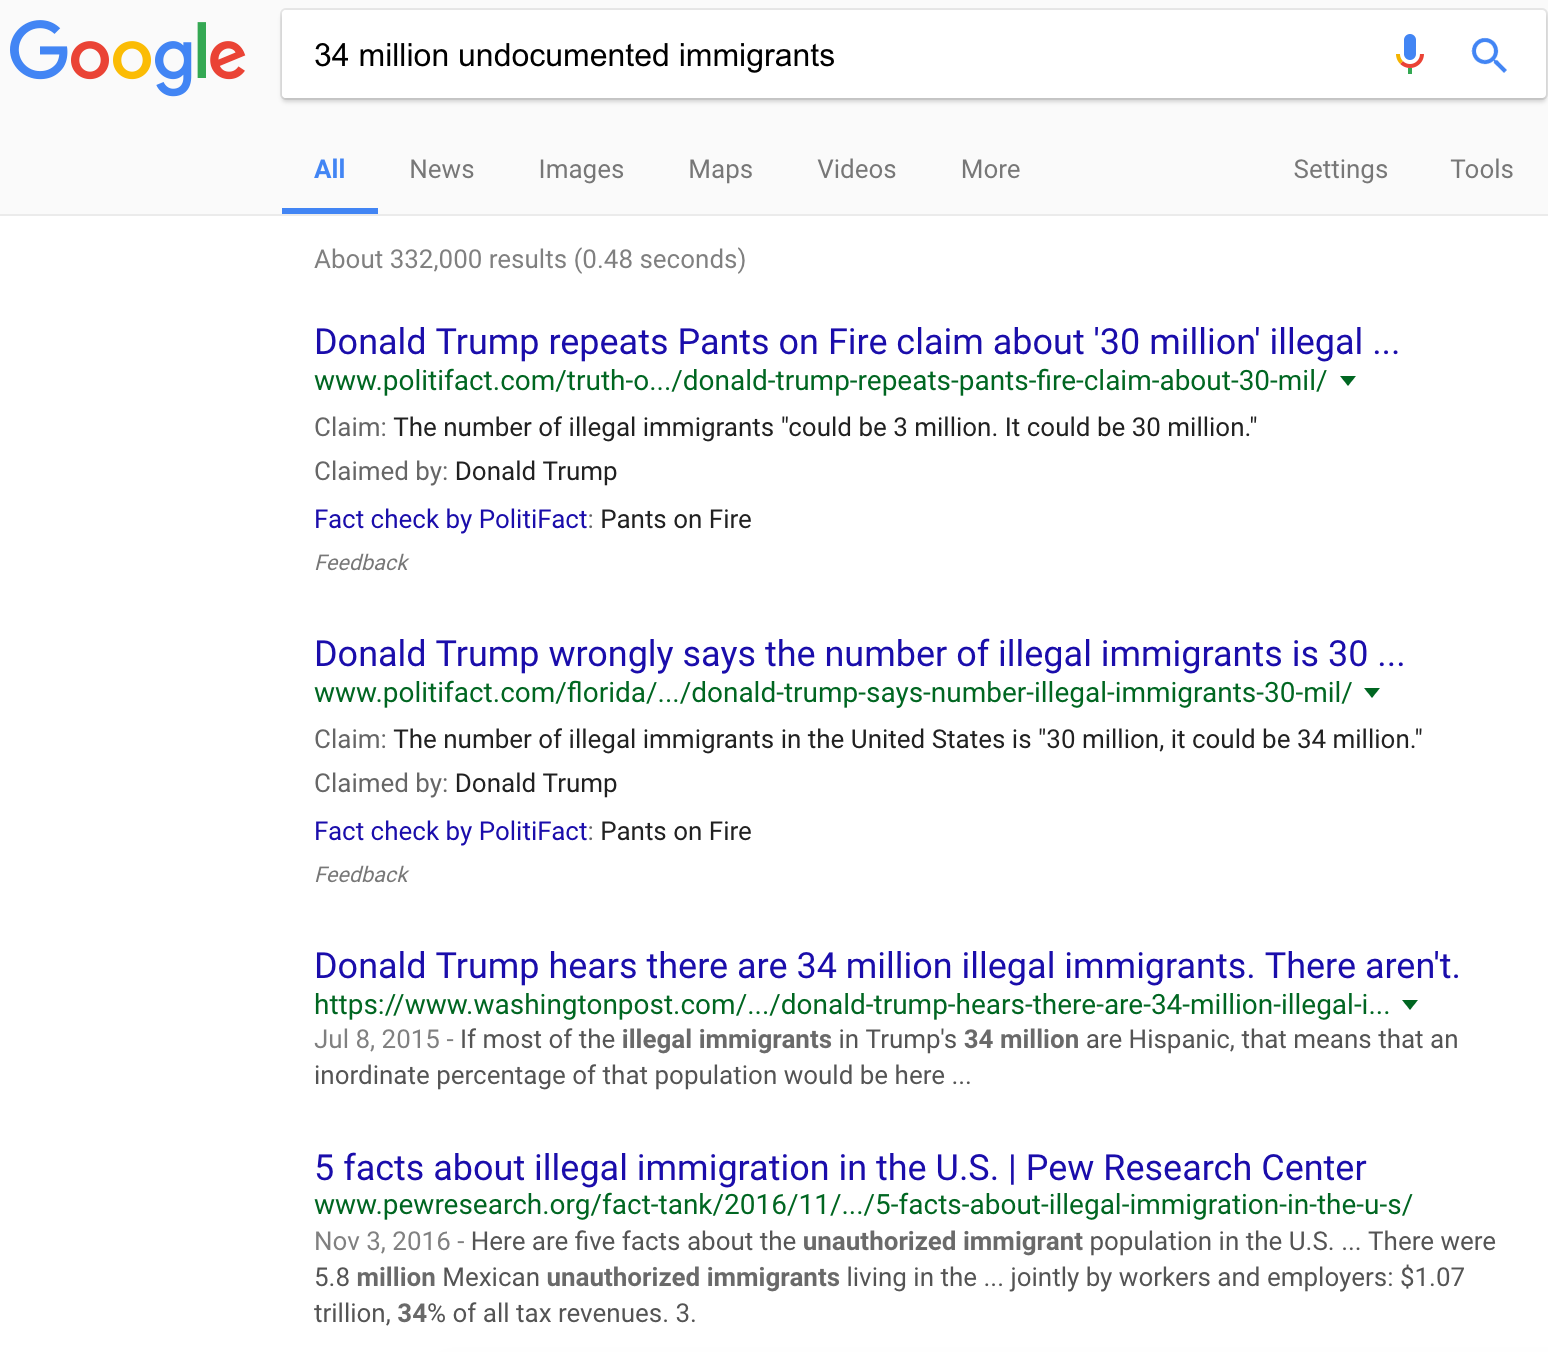 A sample of how Google's new fact-check system looks in action.